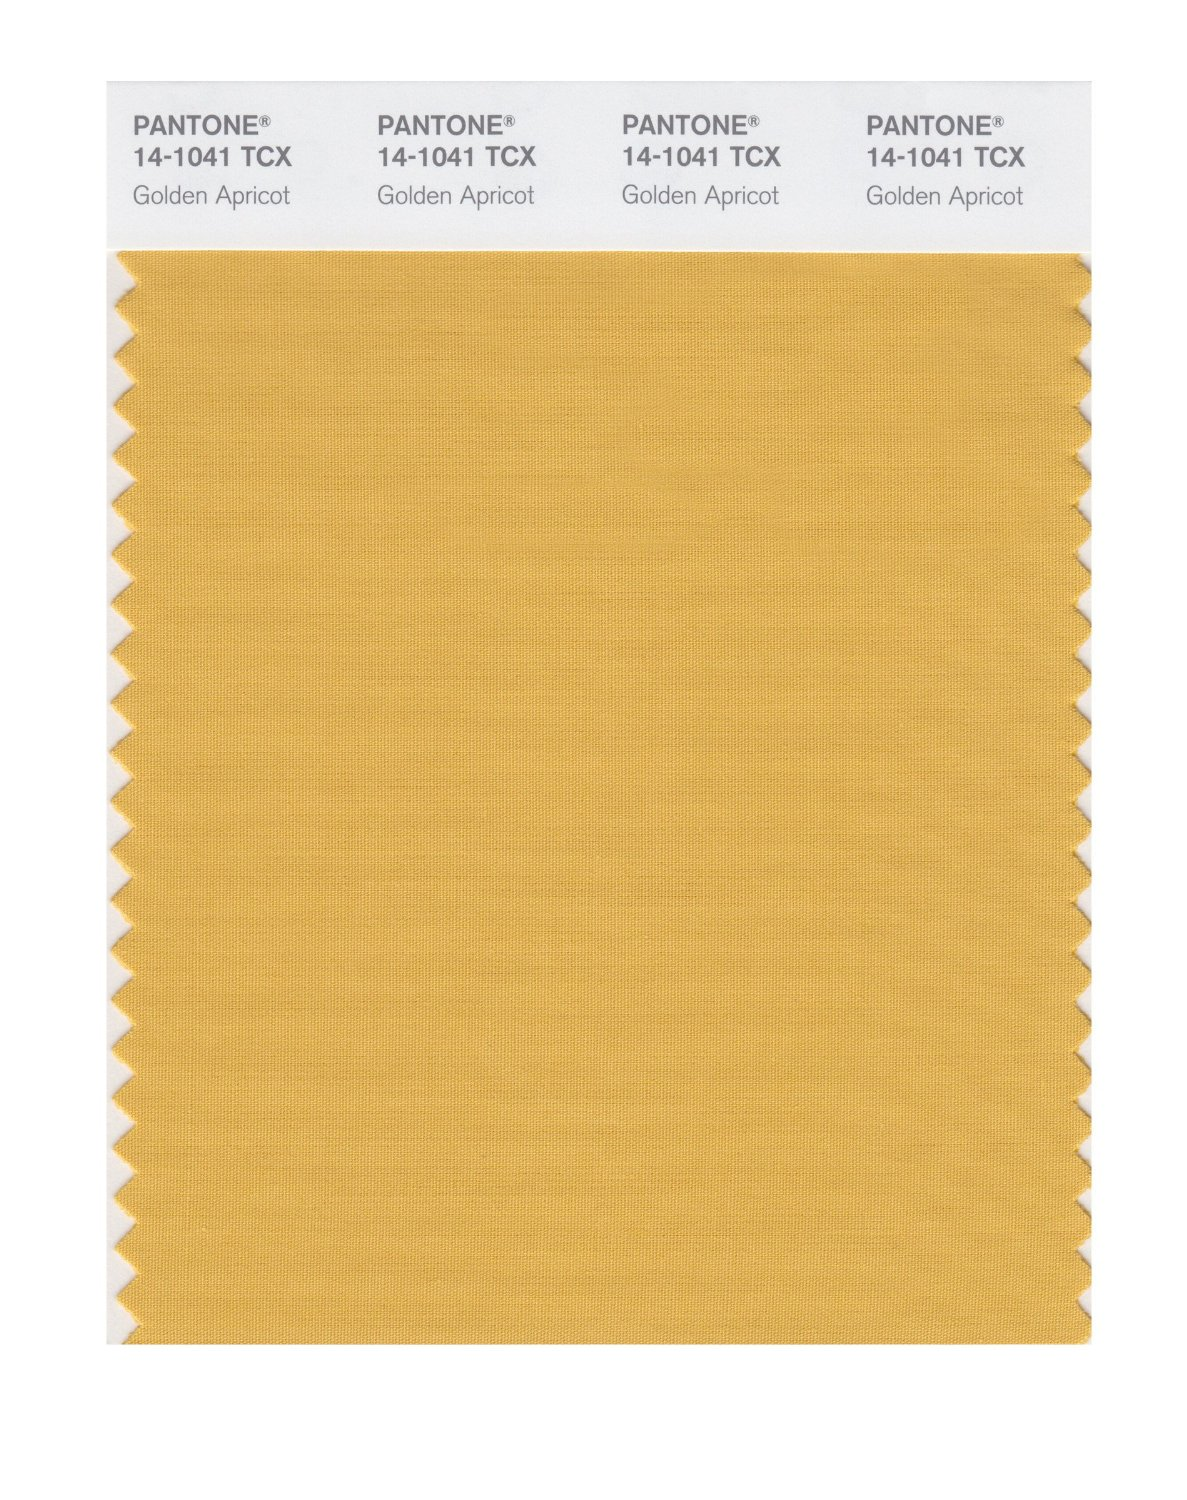 Pantone Smart Swatch 14-1041 Golden Apricot